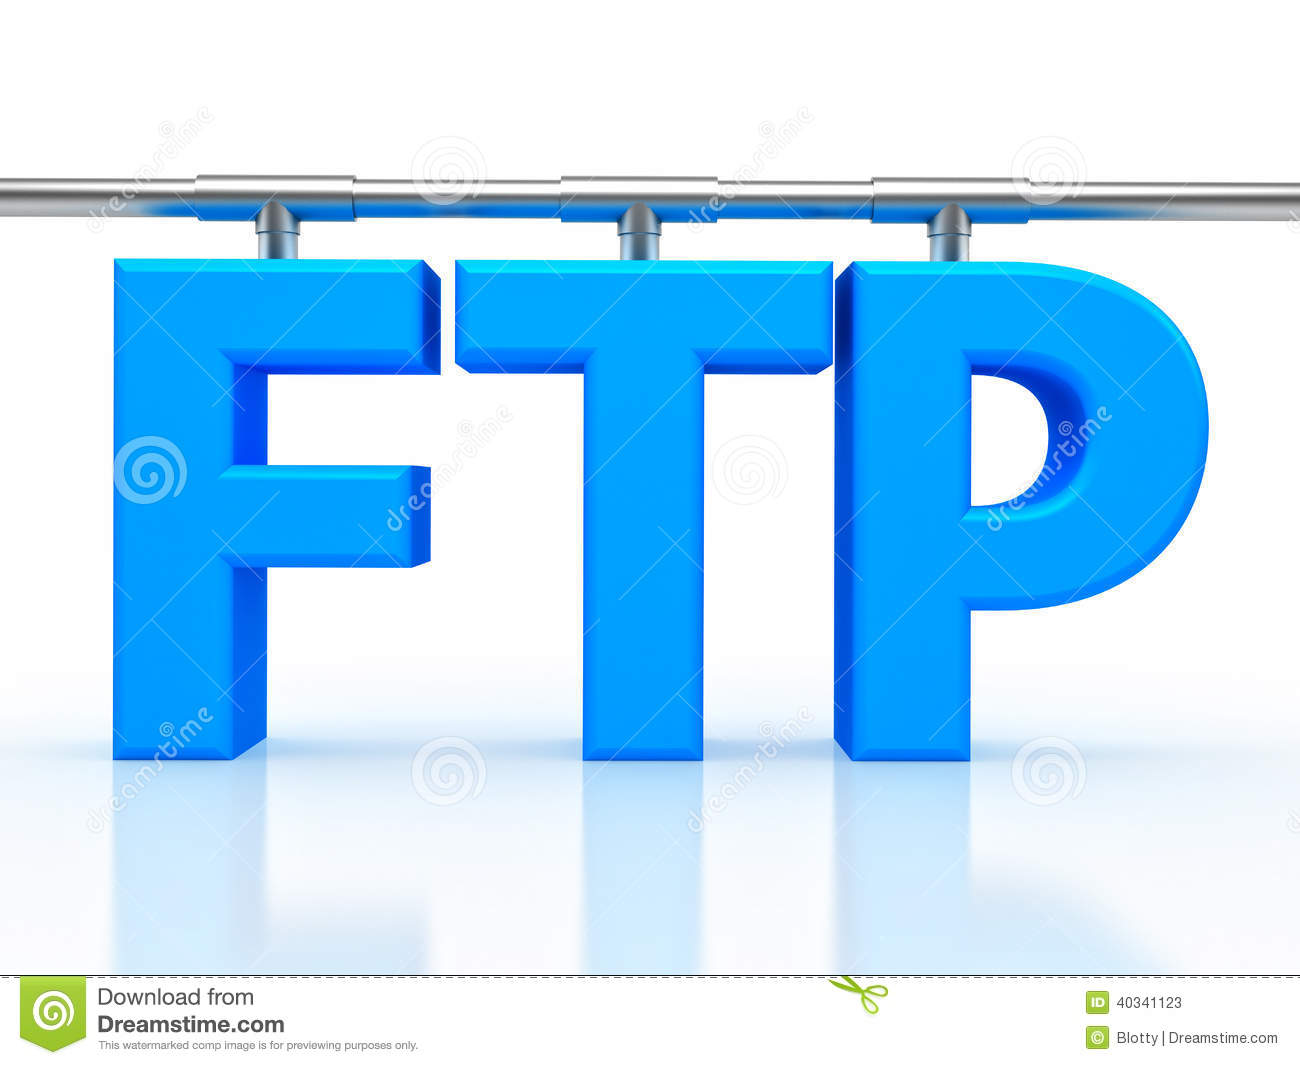 how to download rpm file from ftp